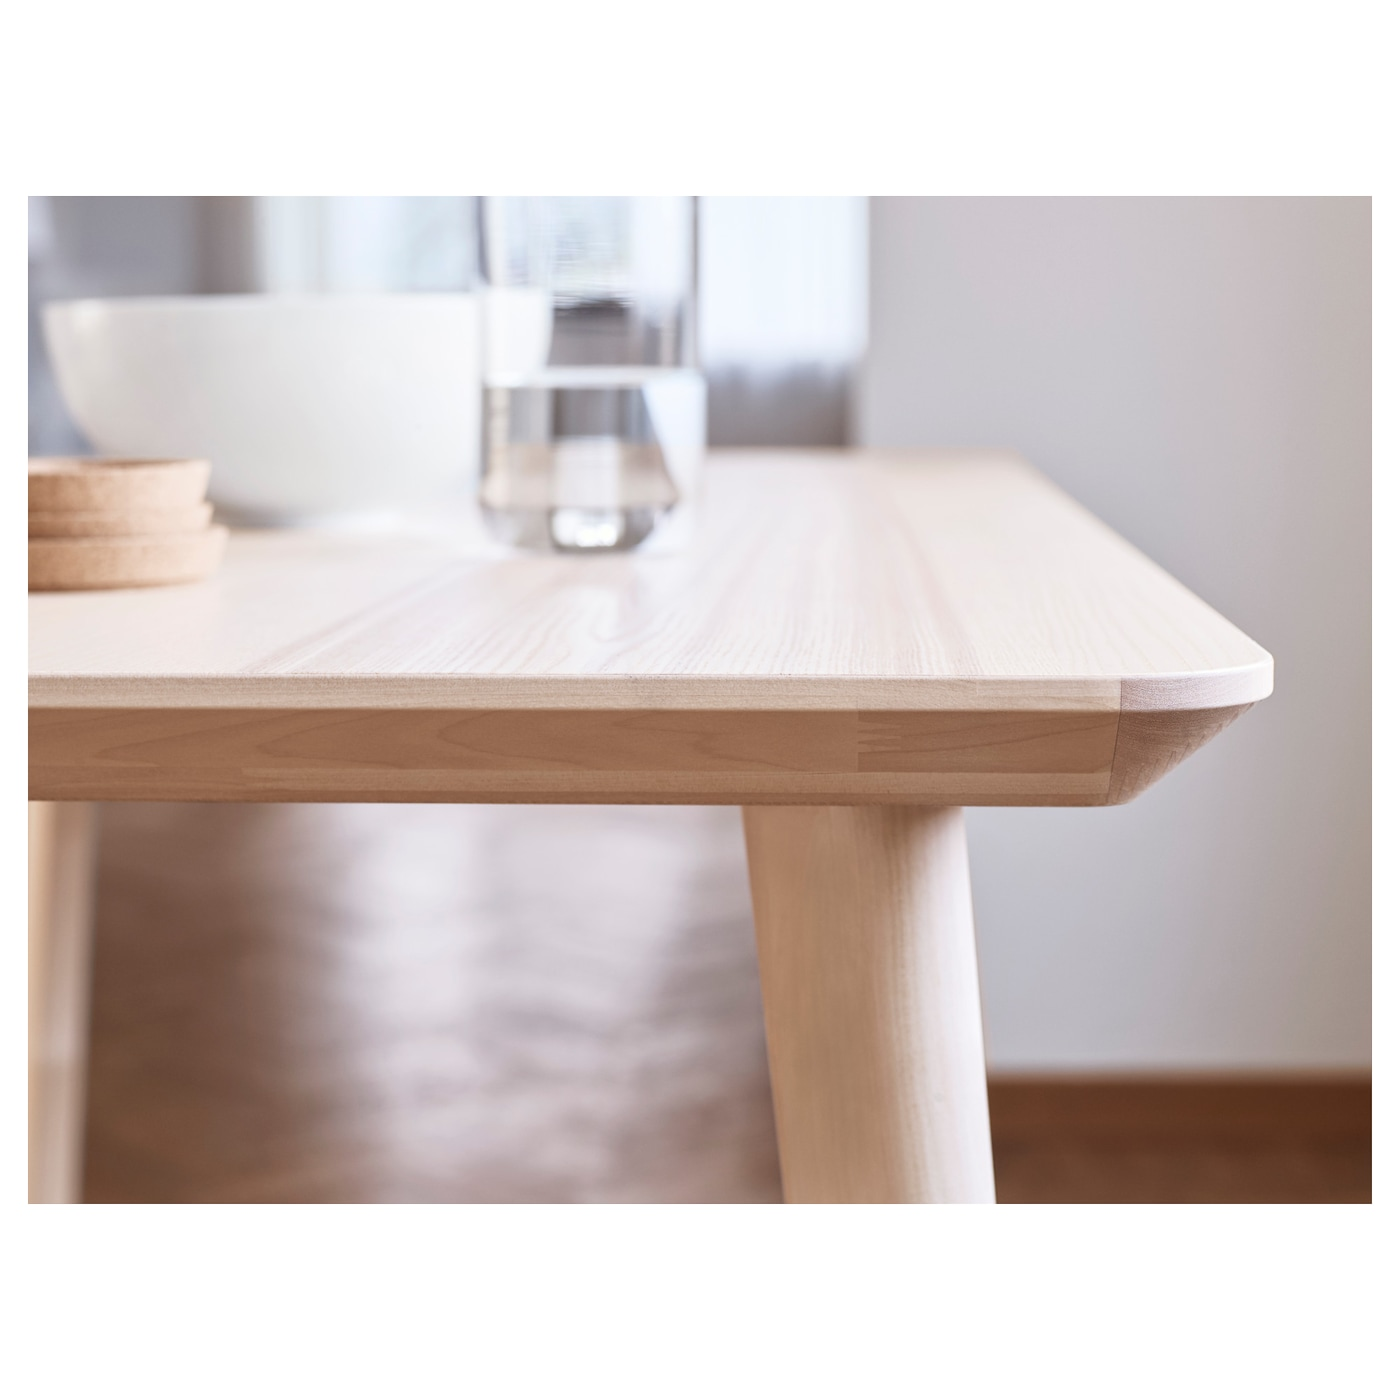 Lisabo coffee table ash veneer 70x70 cm ikea - Table basse 110x110 ...